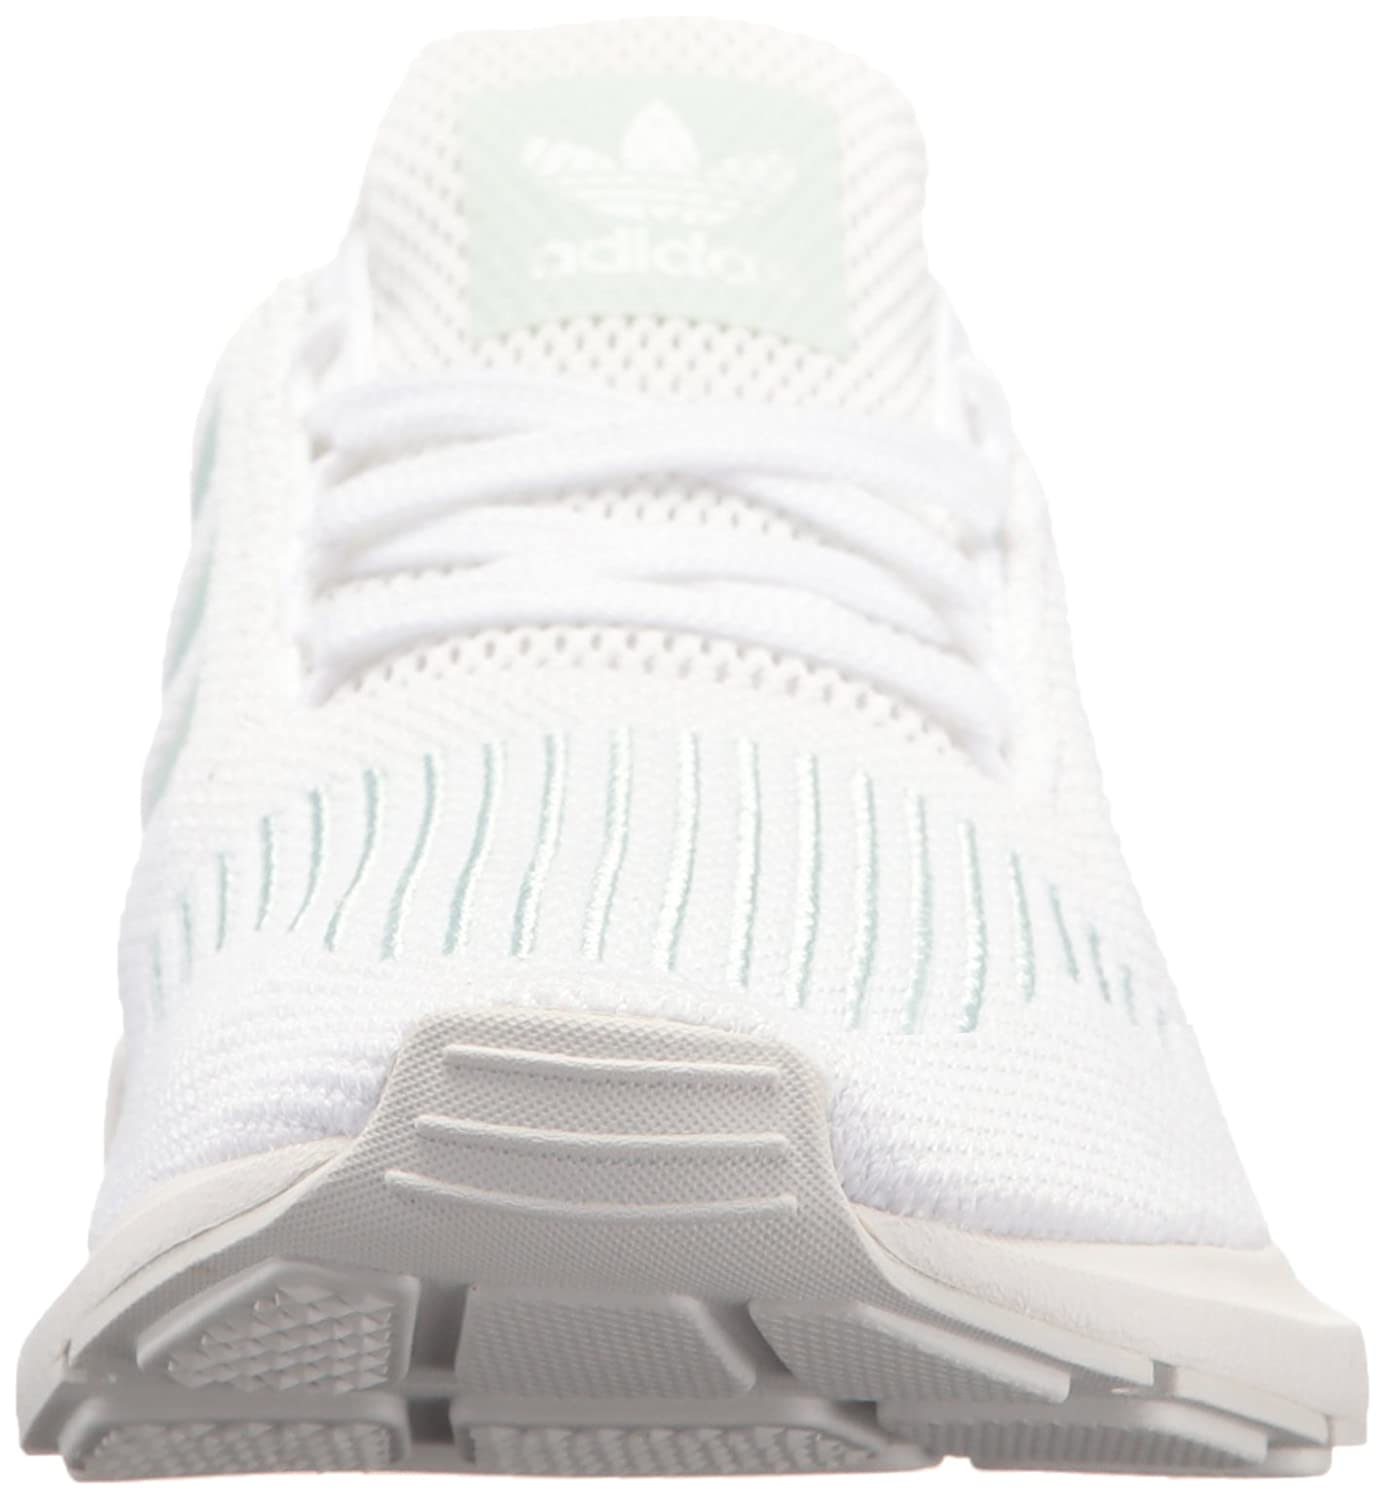 Camiseta adidas uno Swift Run gris, W Swift Run para mujer W Blanco// gris, uno daa24db - accademiadellescienzedellumbria.xyz